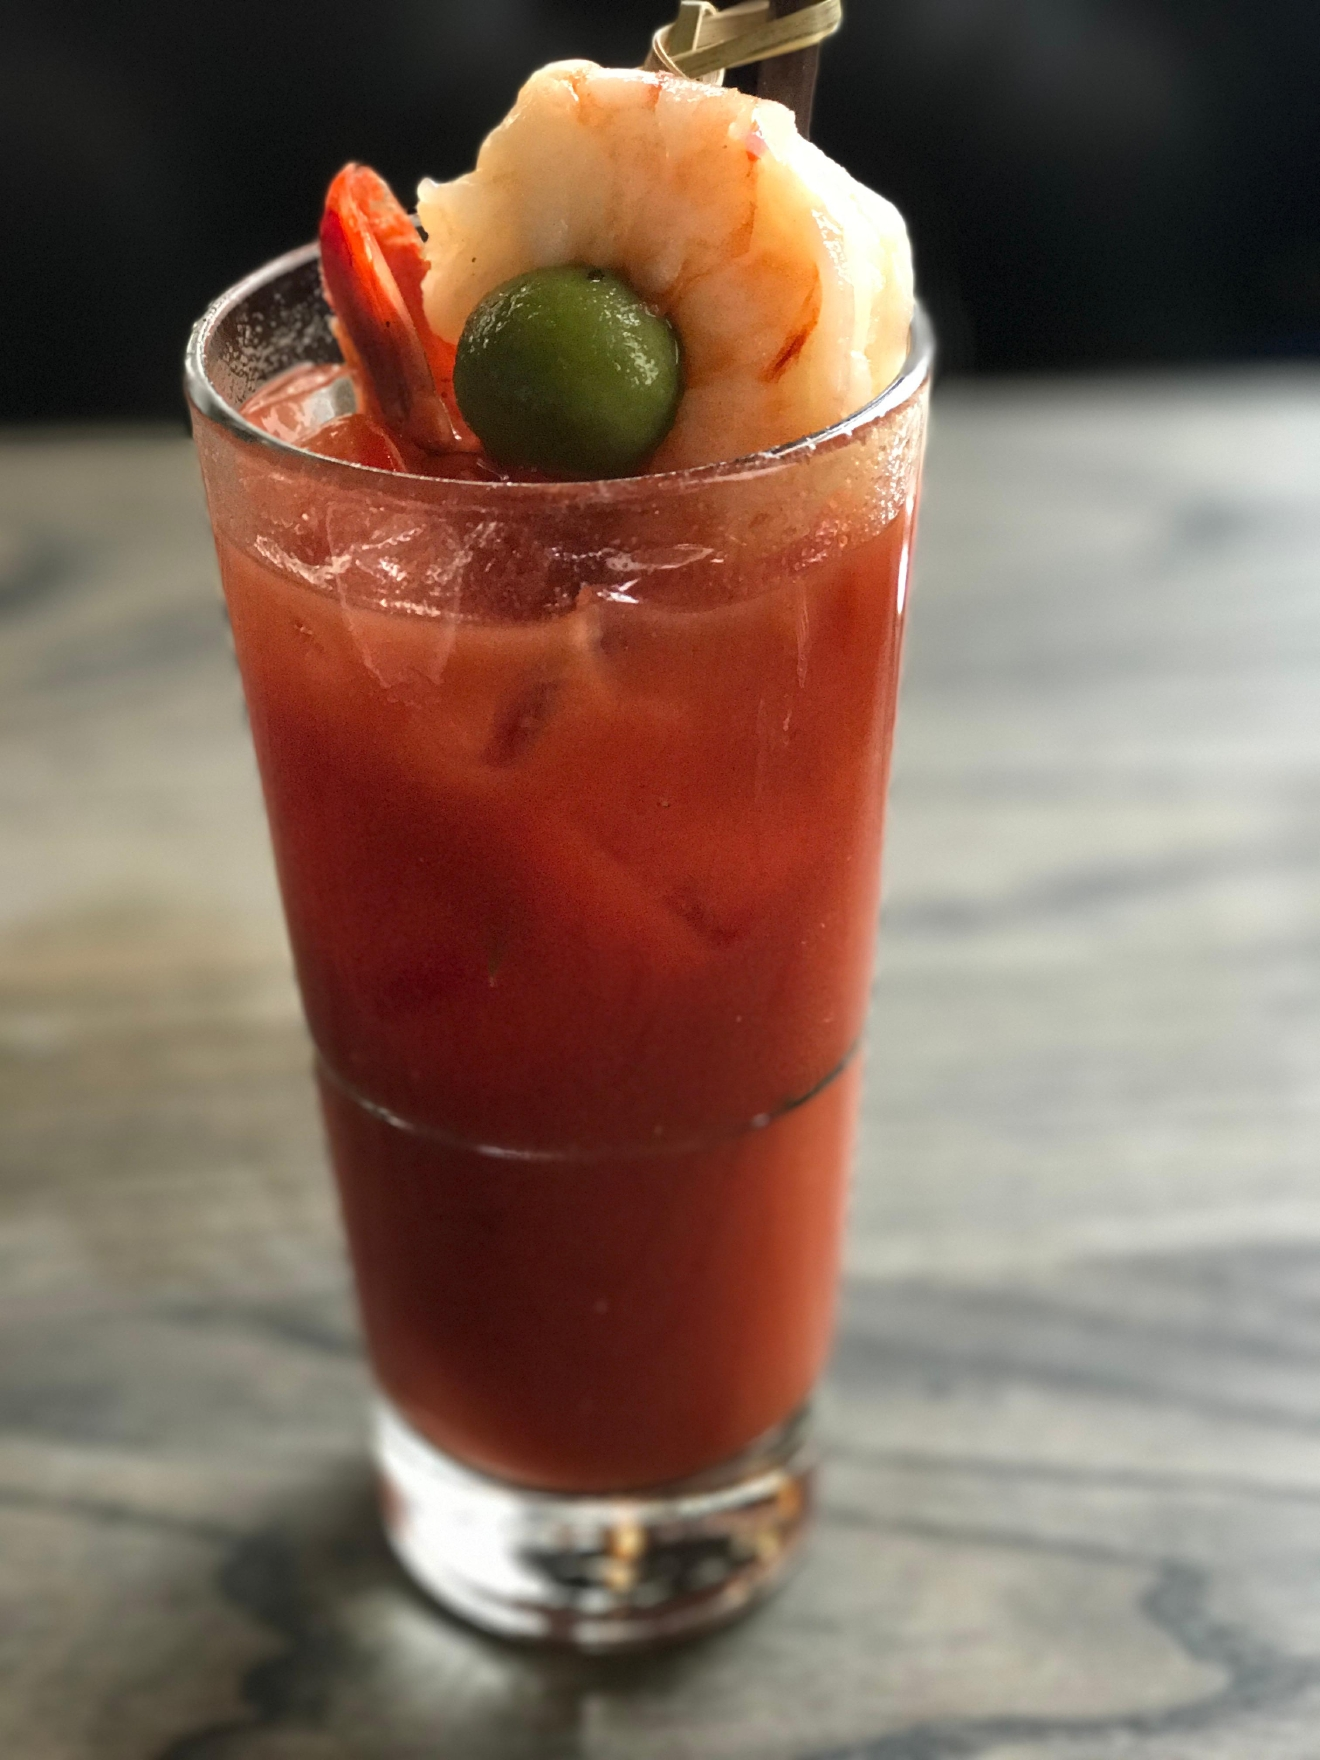 Spicy Bloody Mary from Pearl Tavern topped with a shrimp.  Yes please.                                            (Image: Kate Neidigh)